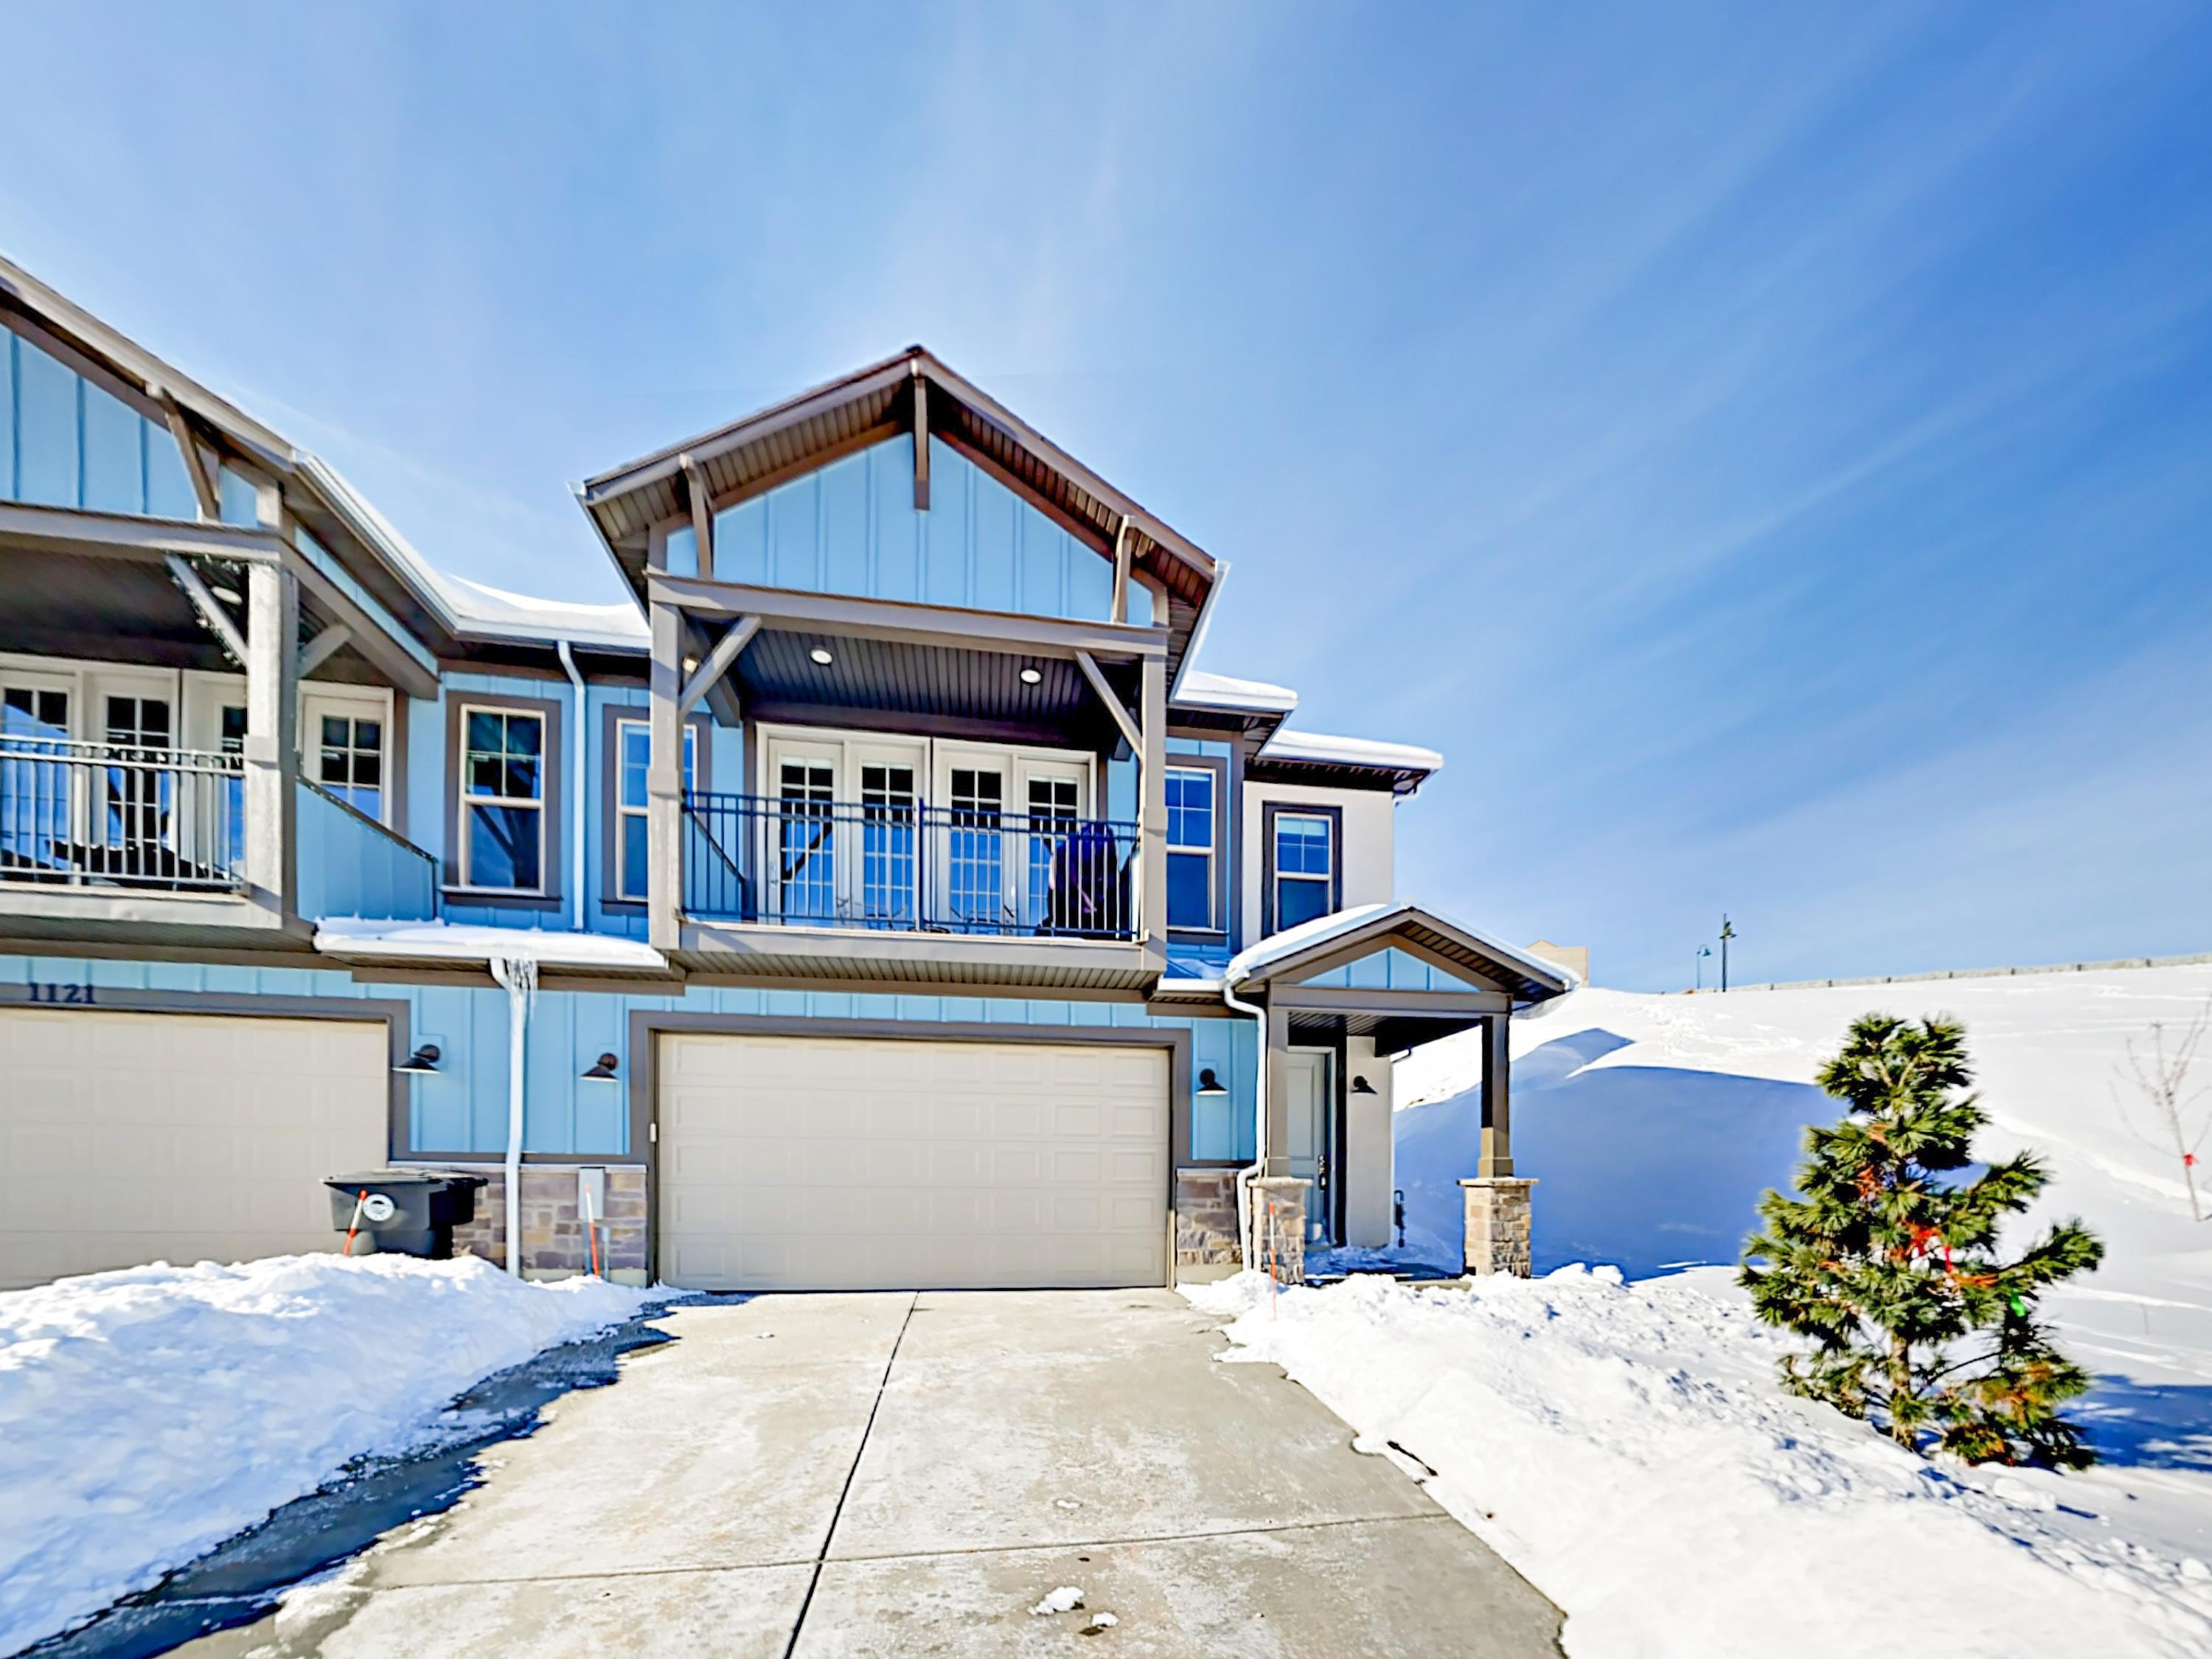 This brand-new 4BR/3.5BA Heber City home is just a 10-minute drive from the gondola at Deer Valley Resort.